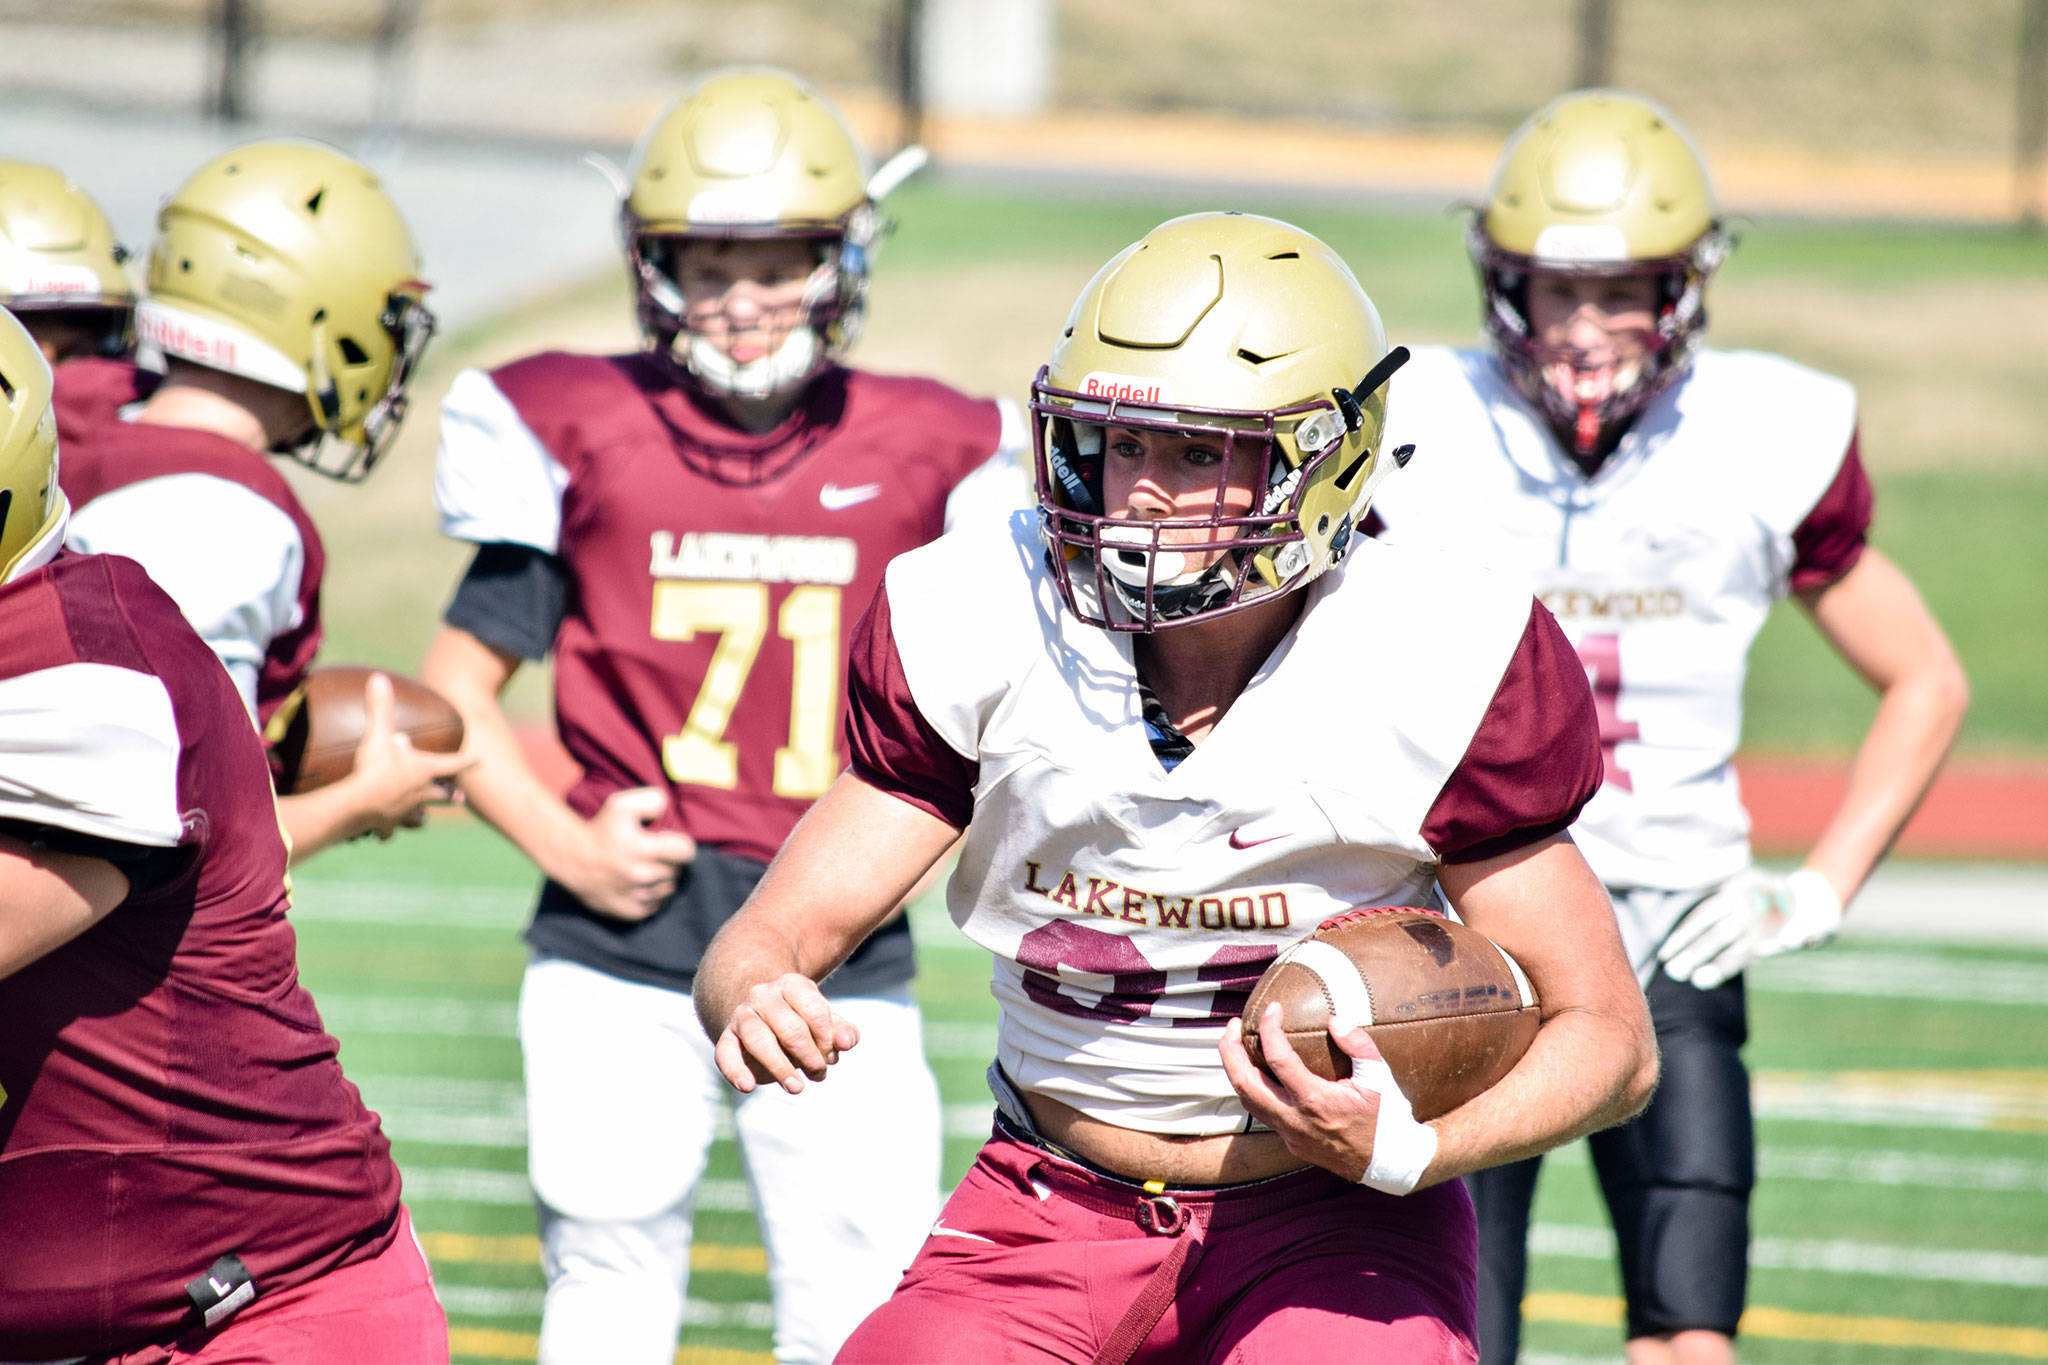 Senior Jackson Schultz runs towards the defense during three-on-three drills on Aug. 28, 2019, at Lakewood High School in Arlington. (Katie Webber / The Herald)